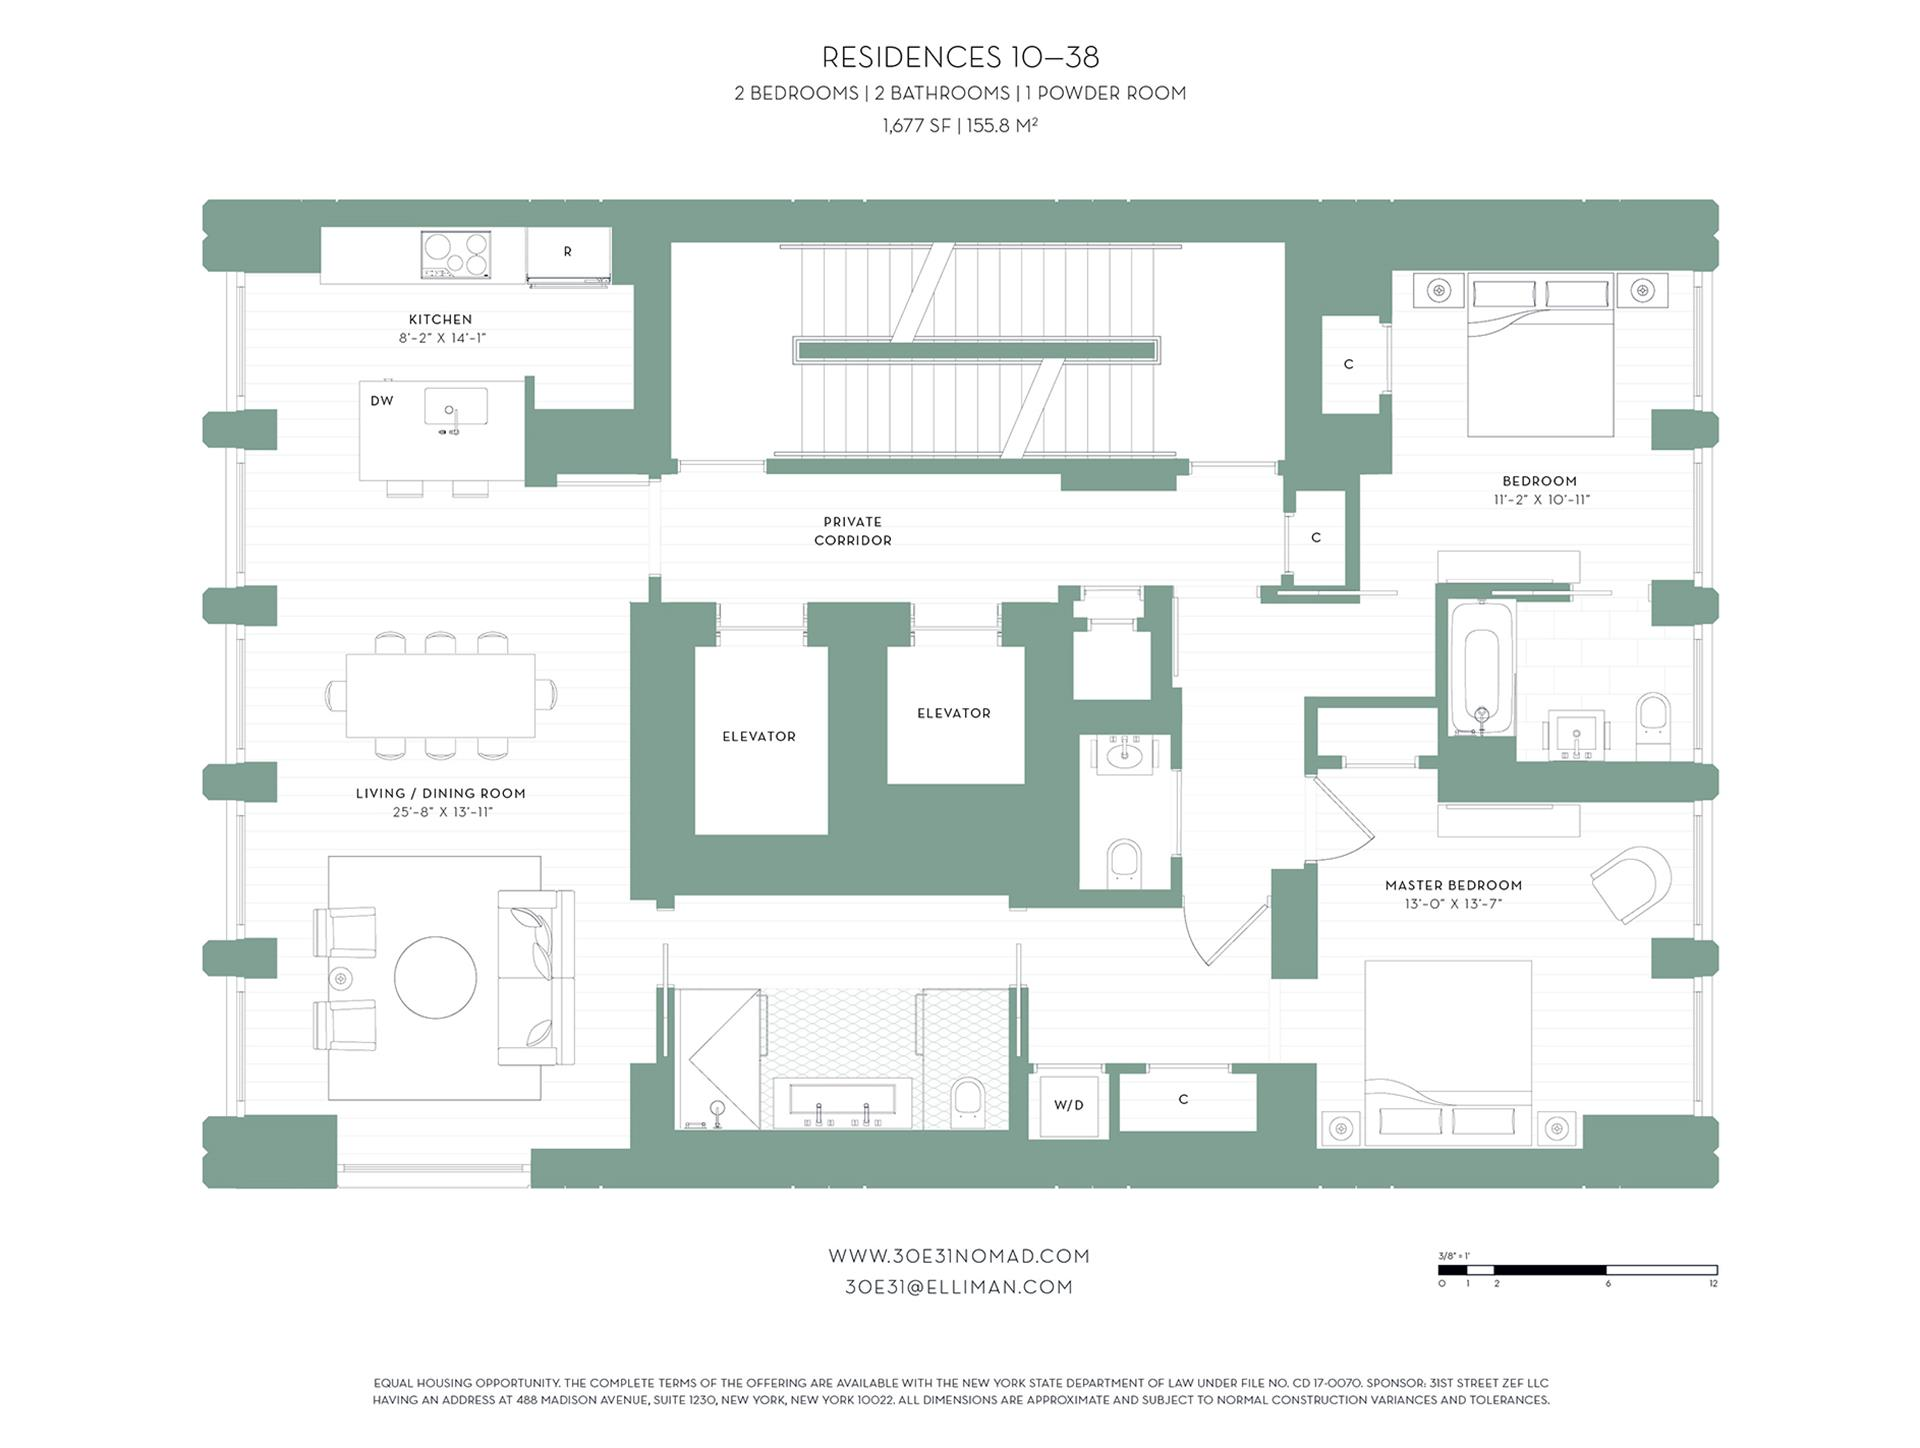 Floor plan of 30 East 31st St, 11 - Midtown, New York